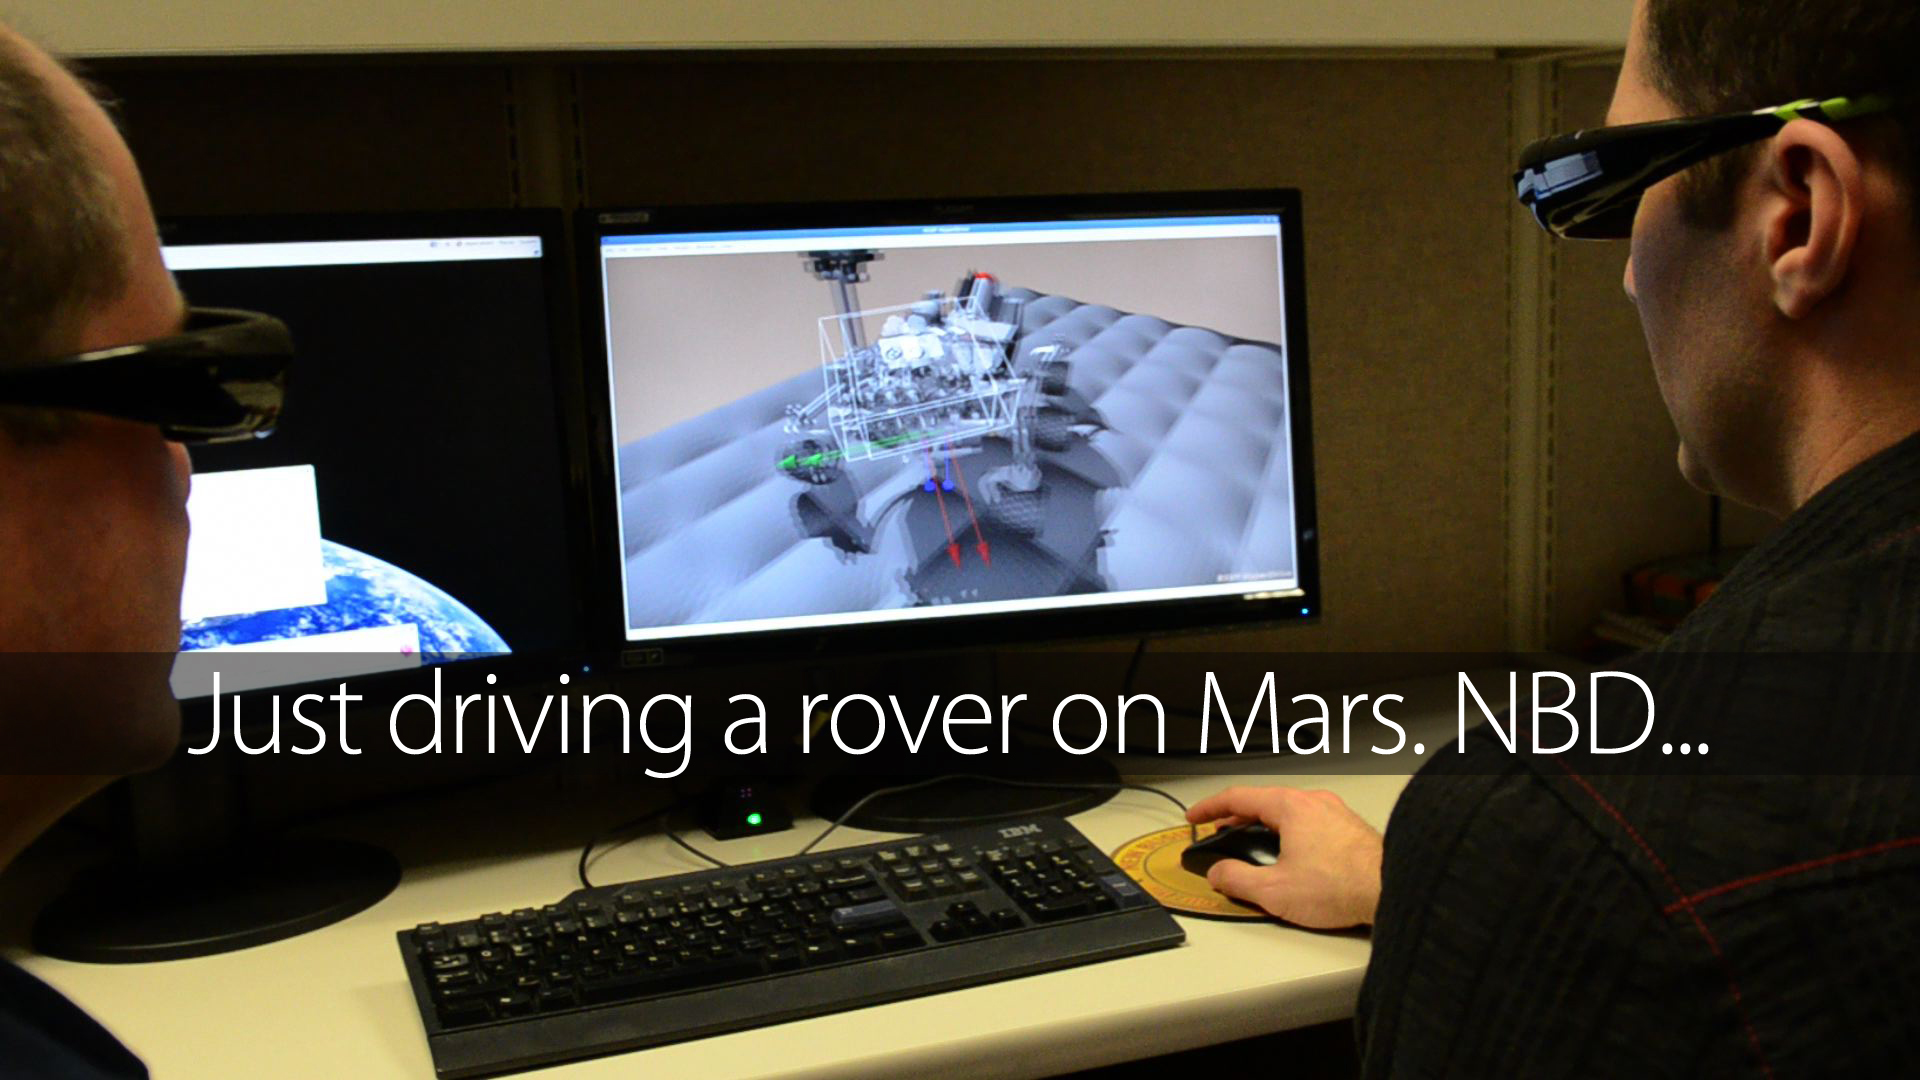 Click here to read The Beautiful Video Game That Drives NASA's Curiosity Mars Rover